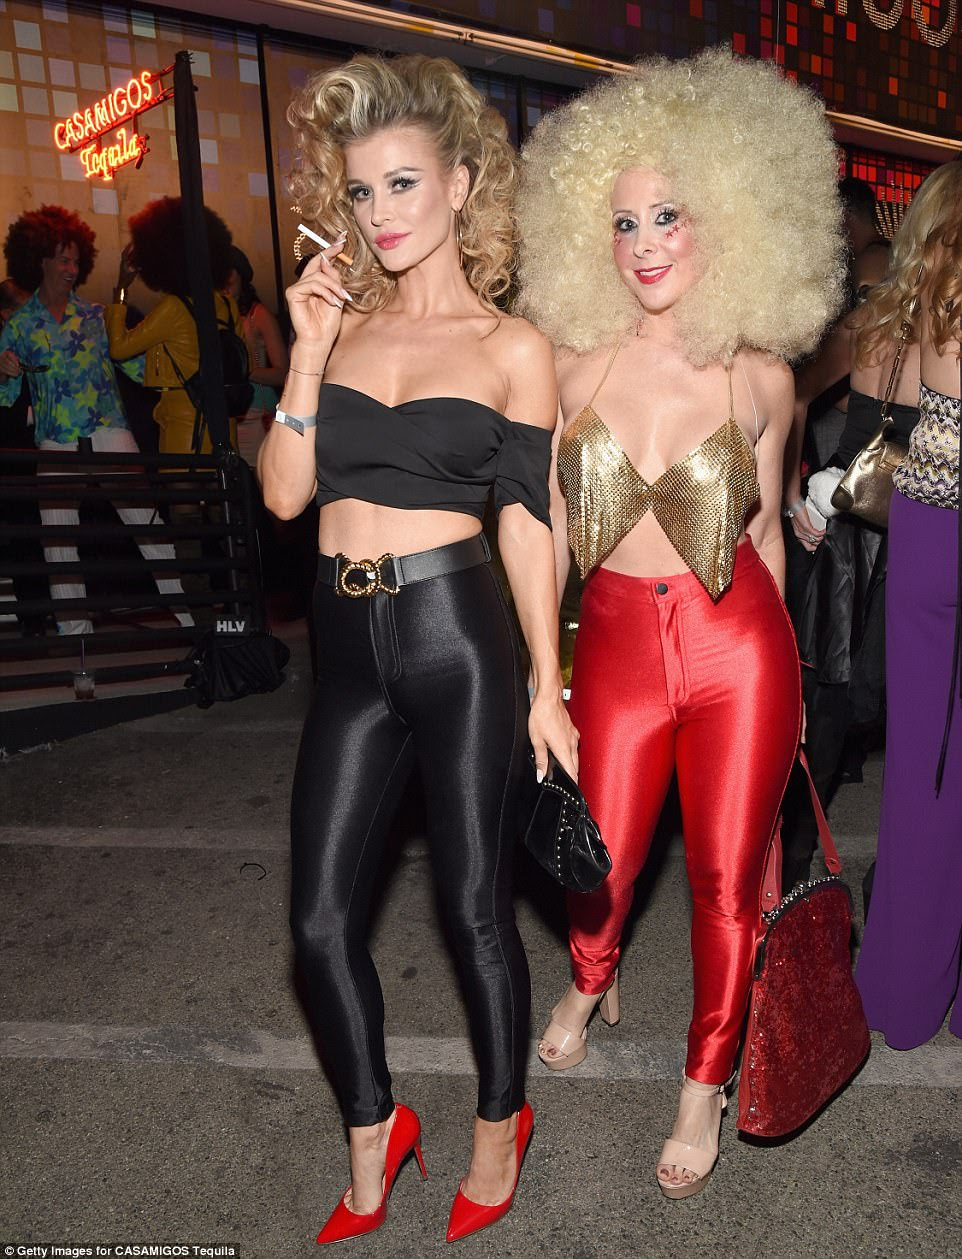 Throwback: Joanna posed with producerTraci Szymanski, who rocked an enormous blonde afro wig